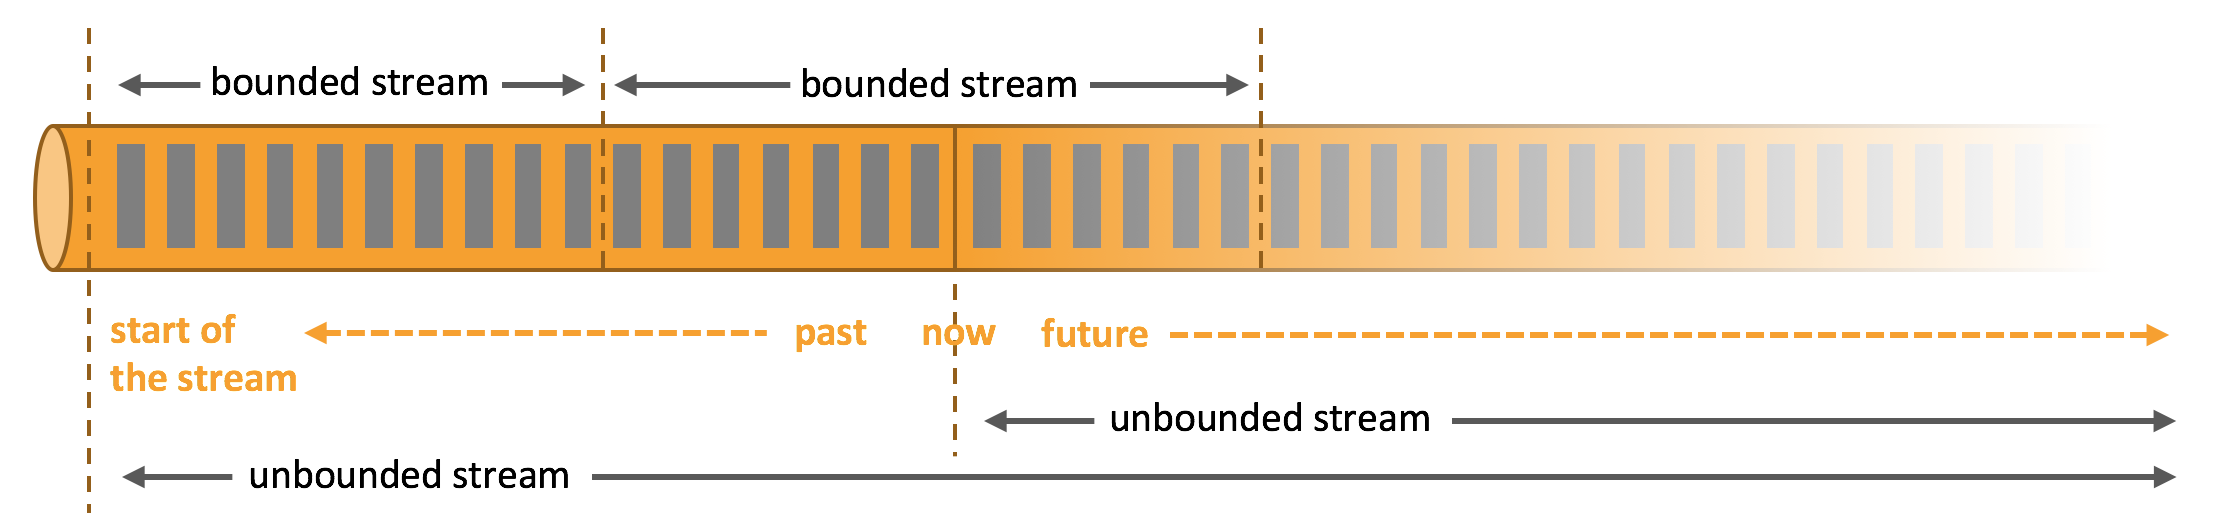 Processing of bounded and unbounded data.